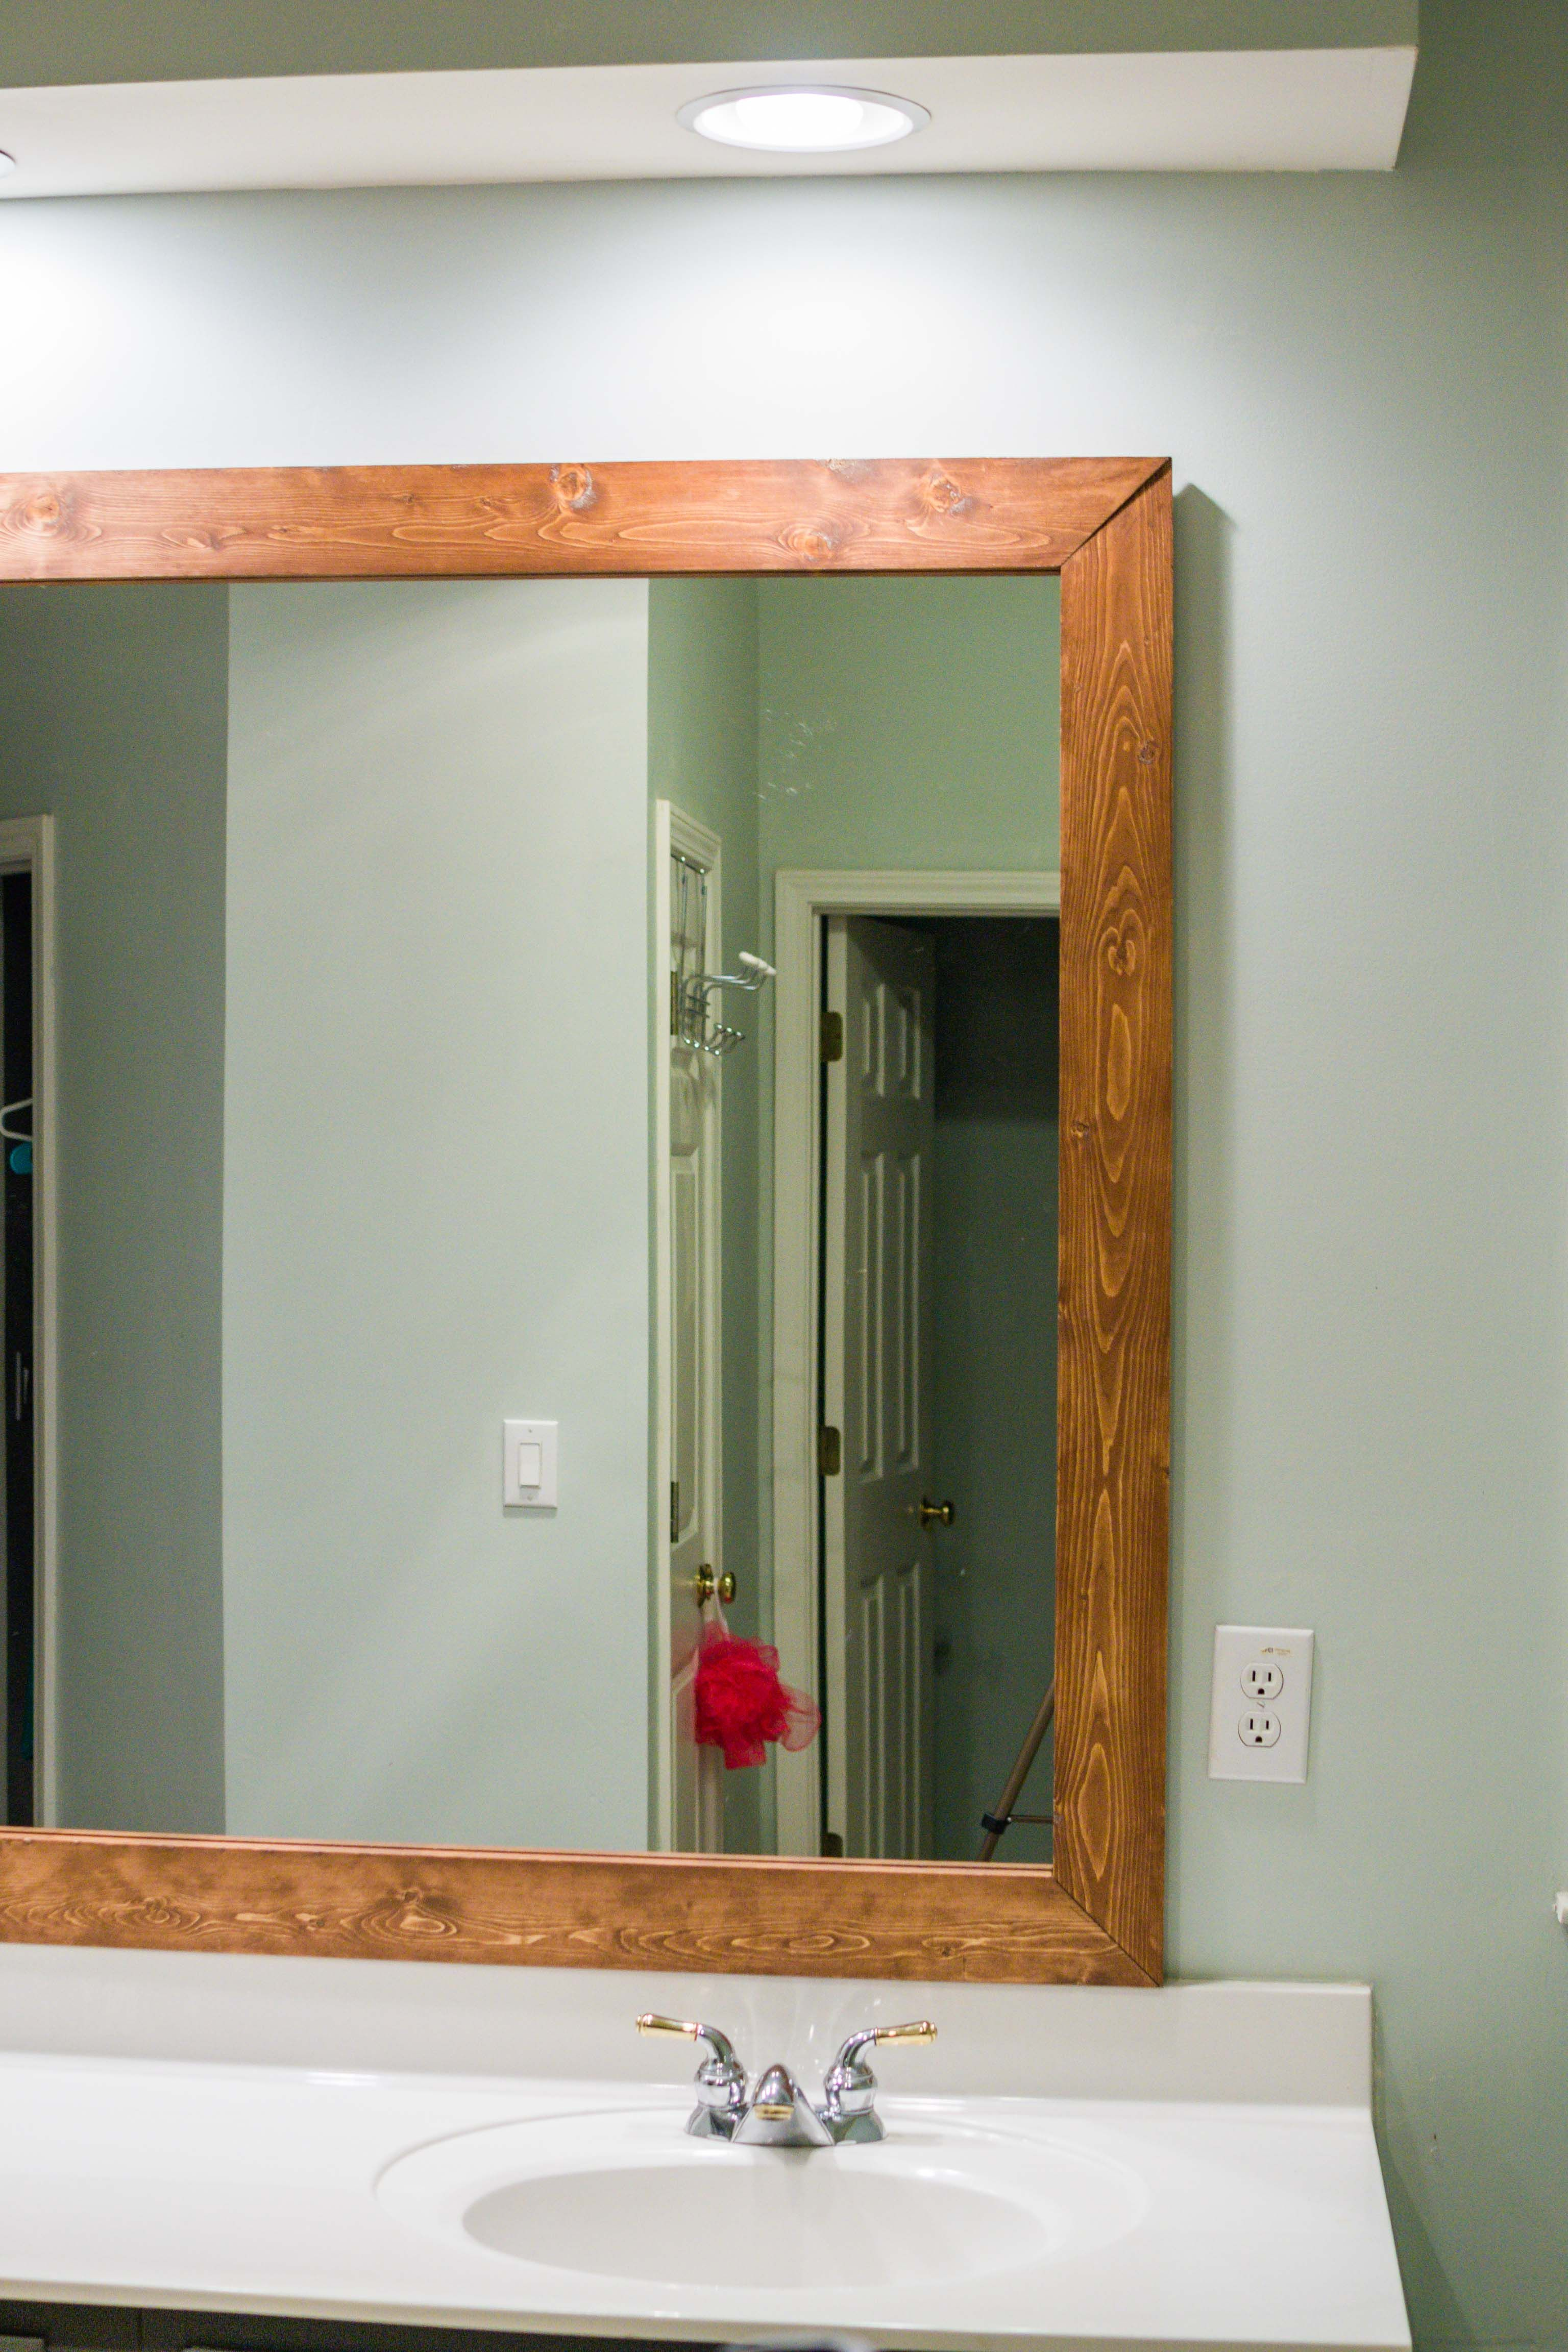 Diy Barn Wood Framed Mirror I D Love To Re Trim And Re Frame